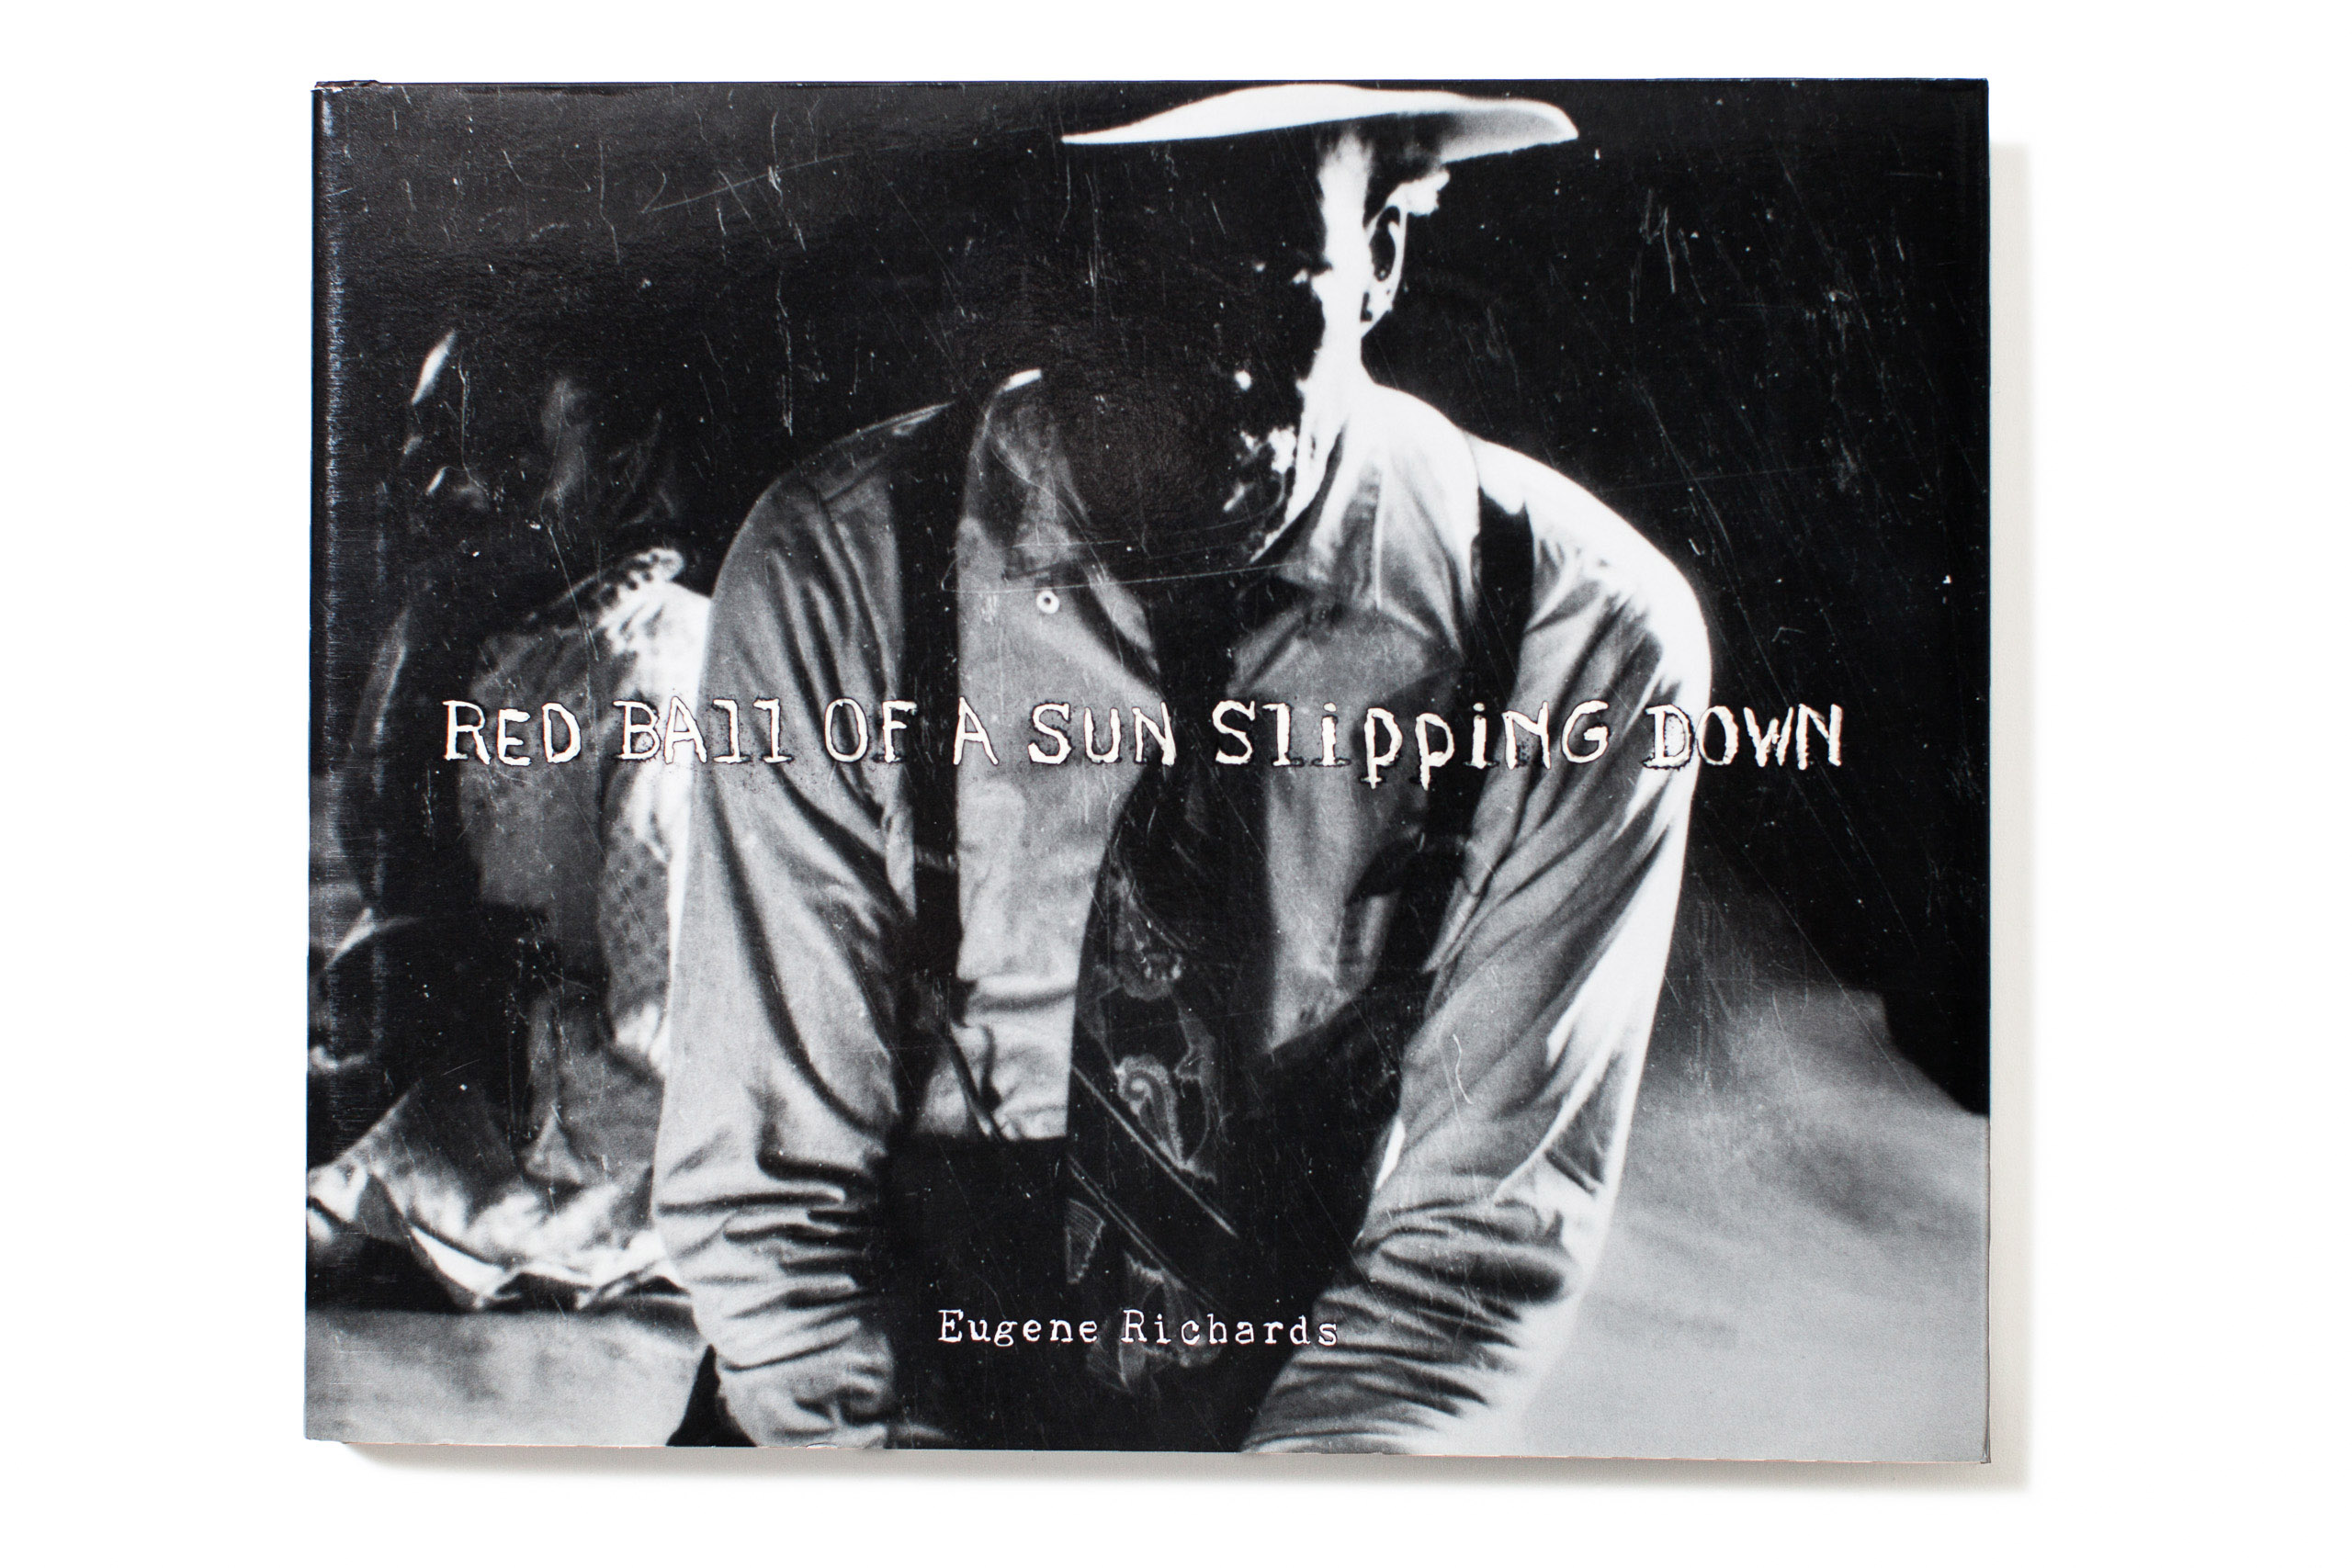 """<a href=""""http://www.amazon.com/Eugene-Richards-Ball-Slipping-Down/dp/0991218906""""><i><b>                                   Red Ball of the Sun Slipping Down                                   </i></b></a> by                                   Eugene Richards,                                    published by                                   Many Voices Press,                                   selected by Olivier Laurent, Editor, <i>TIME</i> LightBox."""